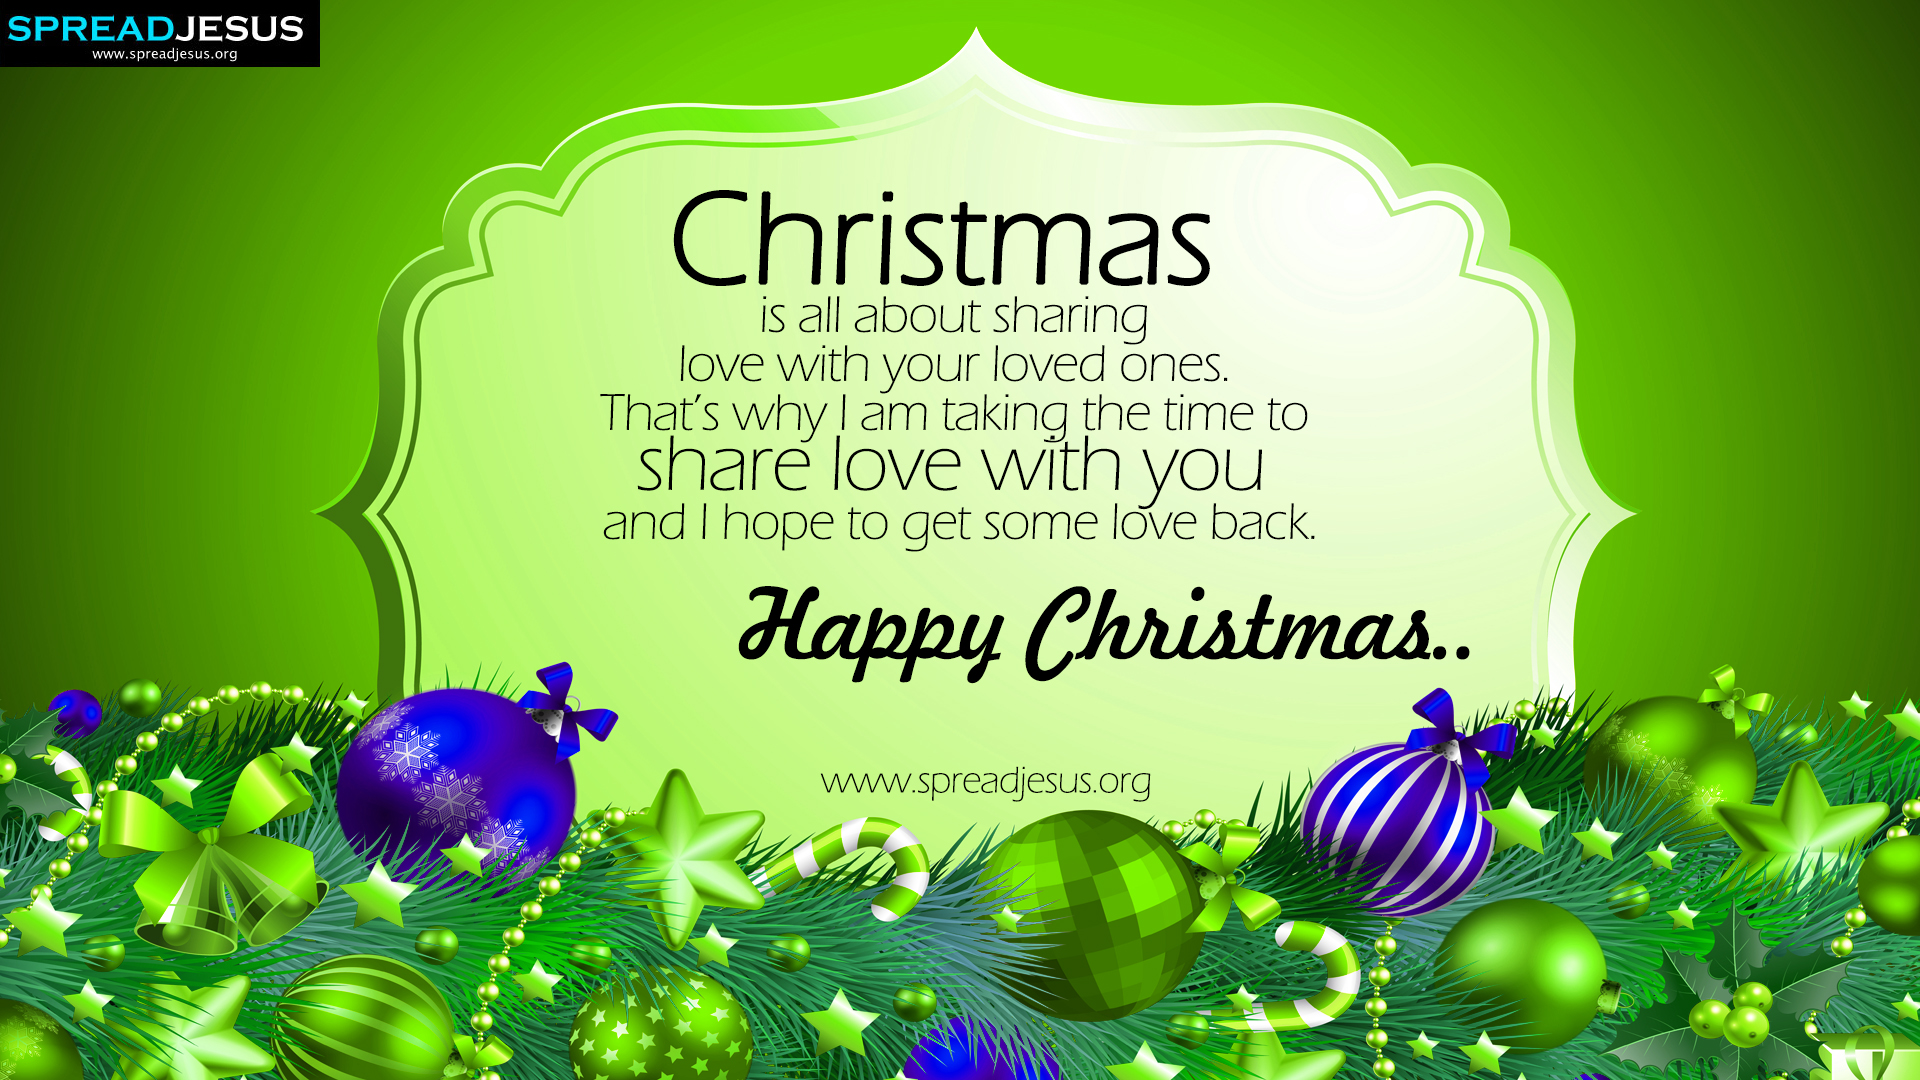 Happy Christmas HD Wallpapers Share Love with you-Happy Christmas Hd Wallpapers Free Download,Happy Christmas Hd Wallpapers Free Download-Happy New Year HD Wallpapers